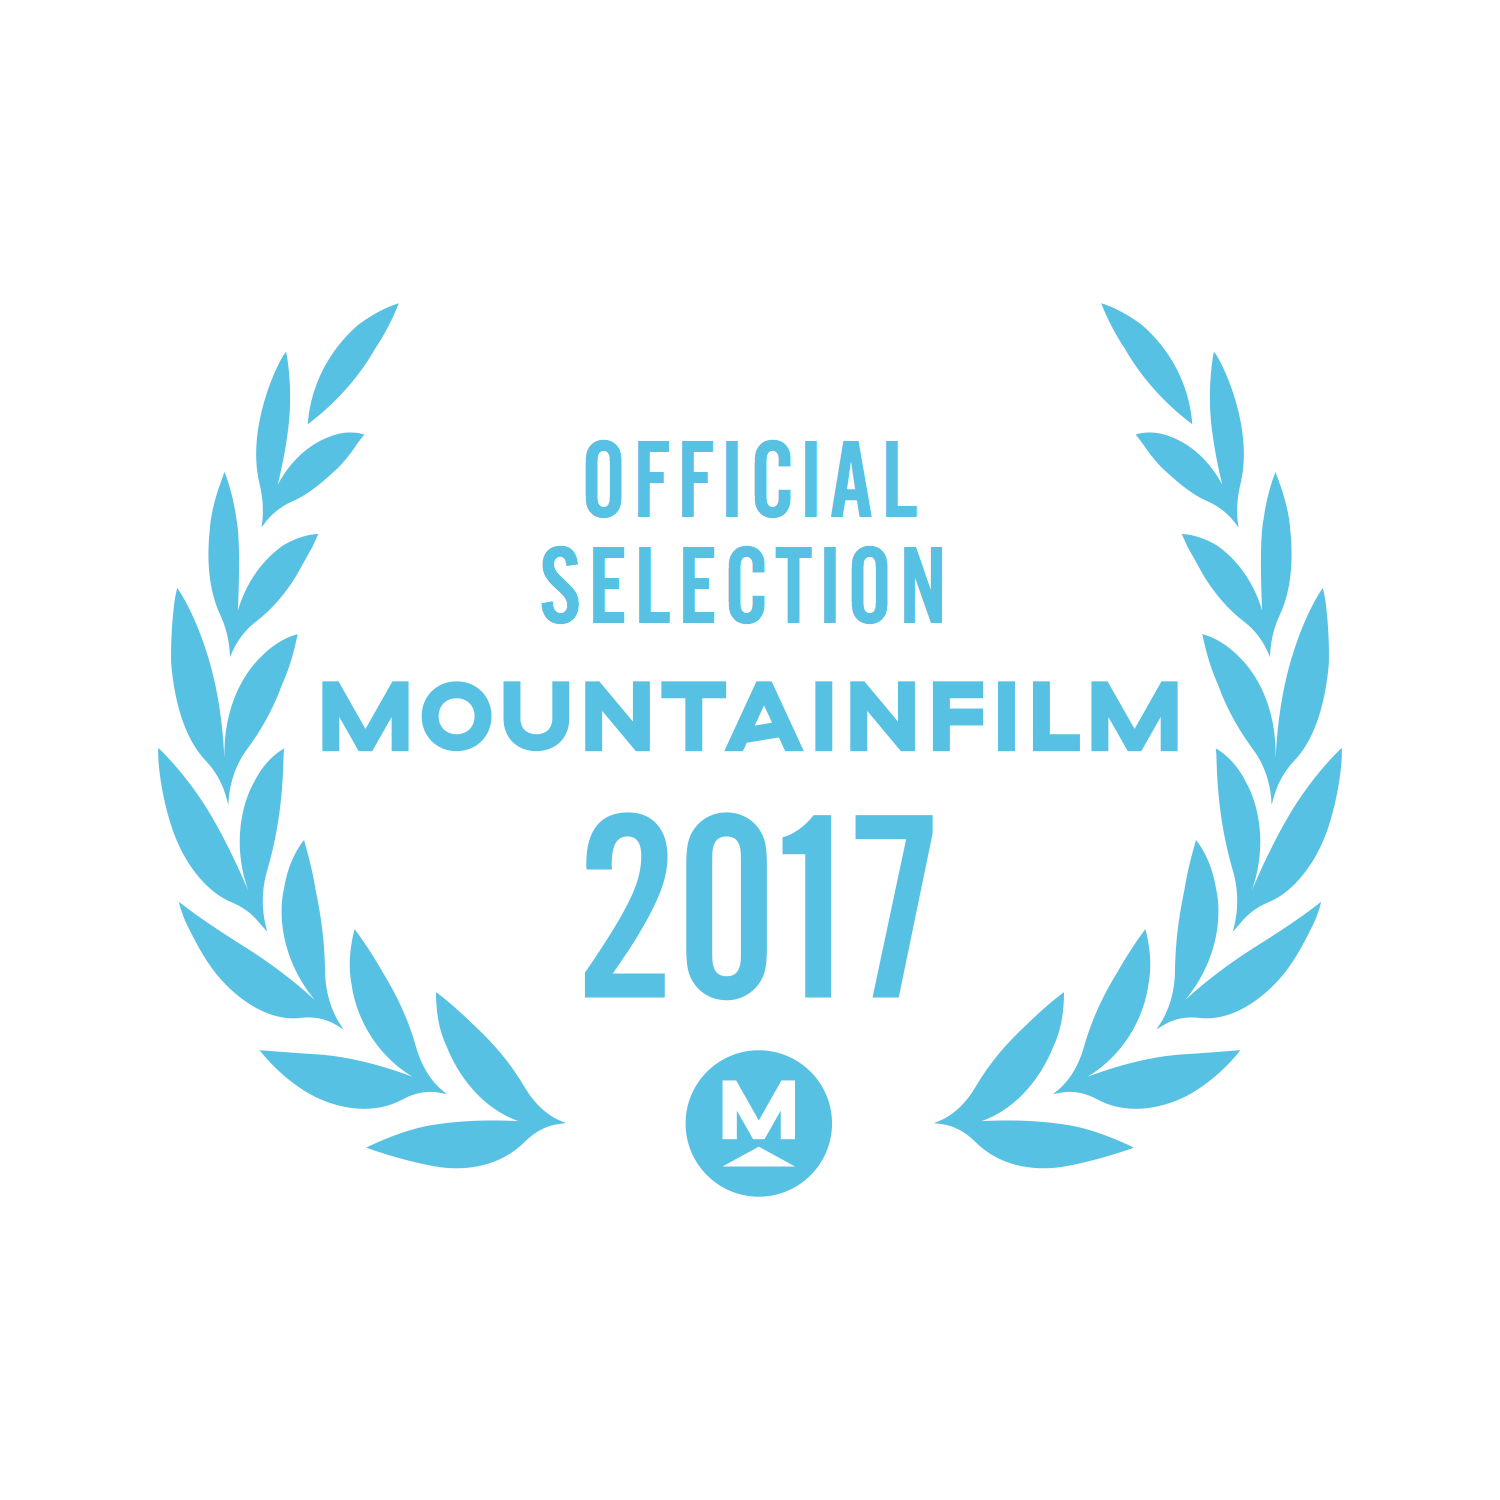 OFFICIAL SELECTION_ Mountainfilm 2017